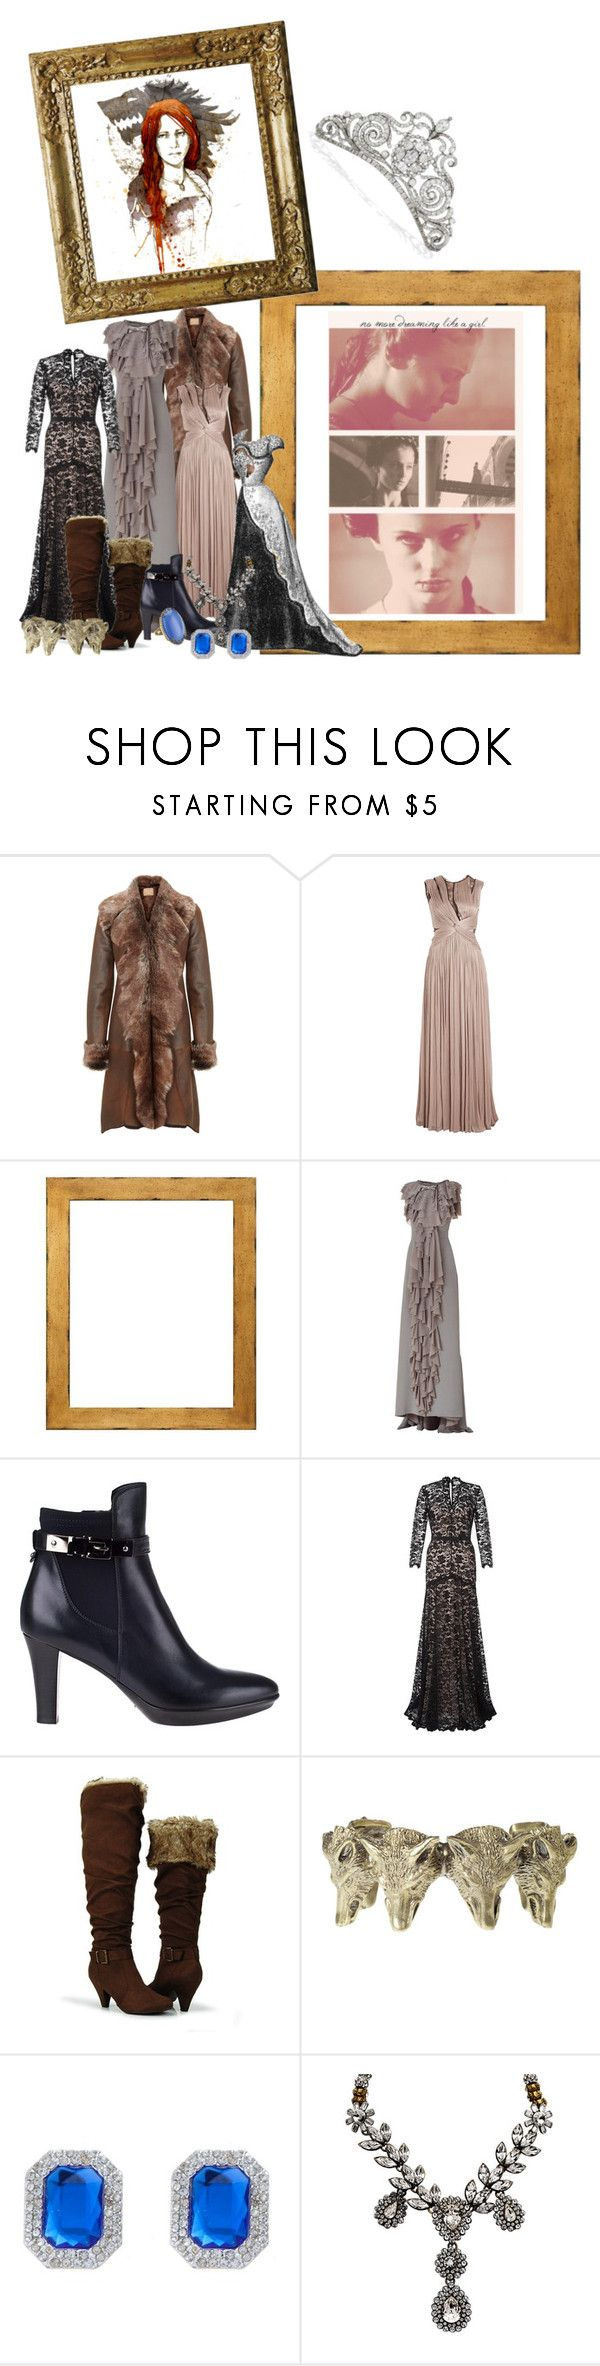 """""""Queen in the North"""" by tesspa ❤ liked on Polyvore featuring Dom & Ruby, Catherine Deane, Viktor & Rolf, Aquatalia by Marvin K., Azaara, Temperley London, City Classified, Alkemie and Otazu"""